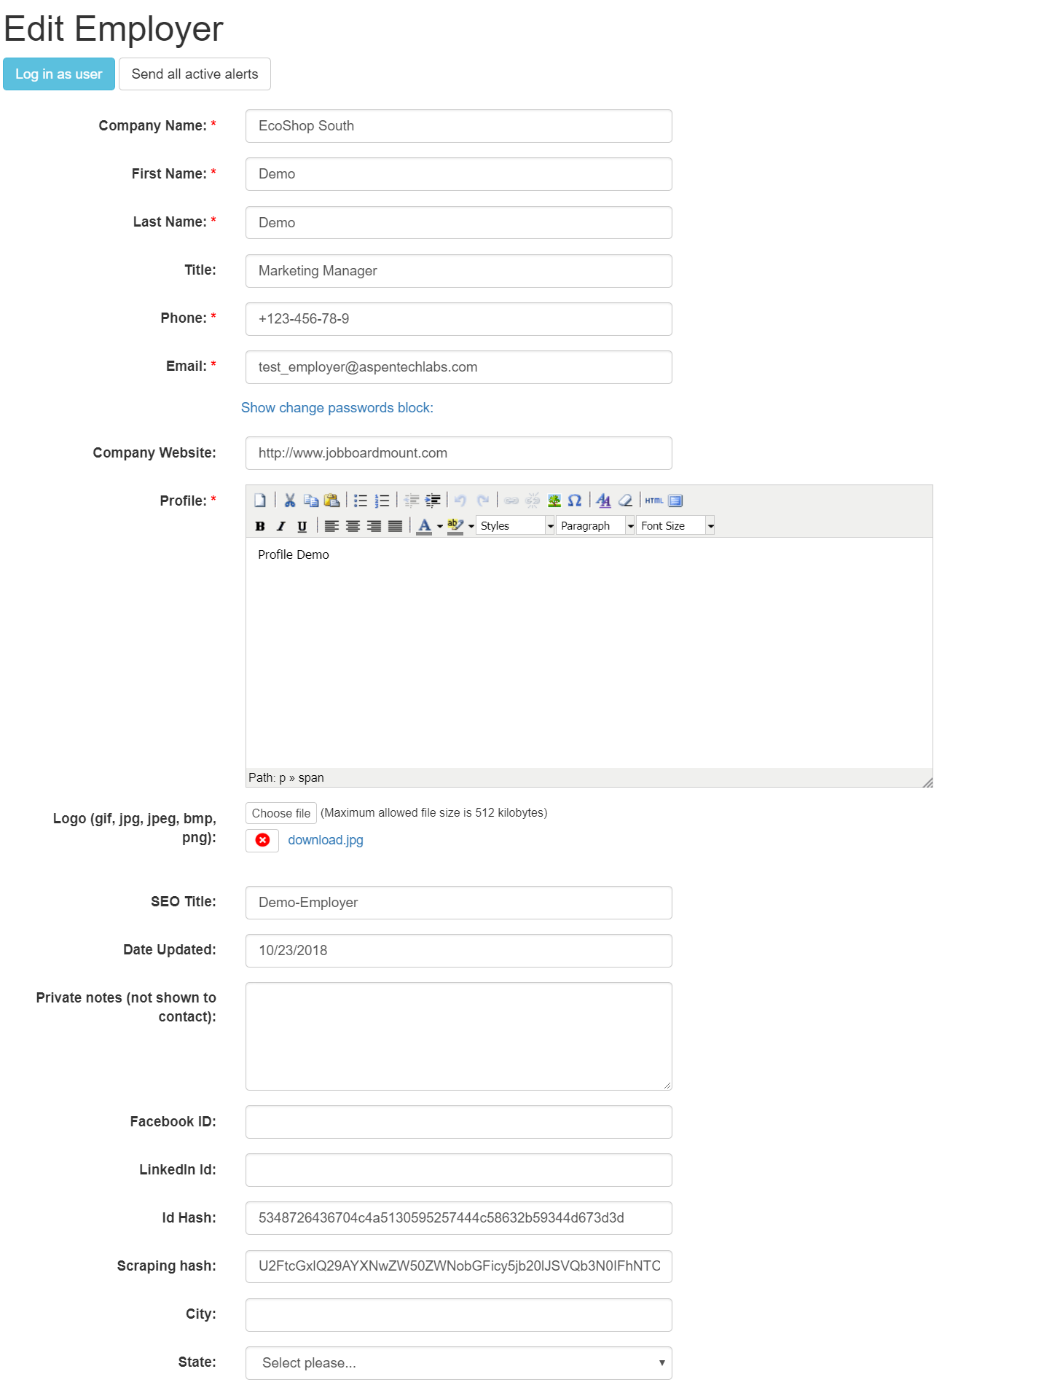 Edit employer profile in admin